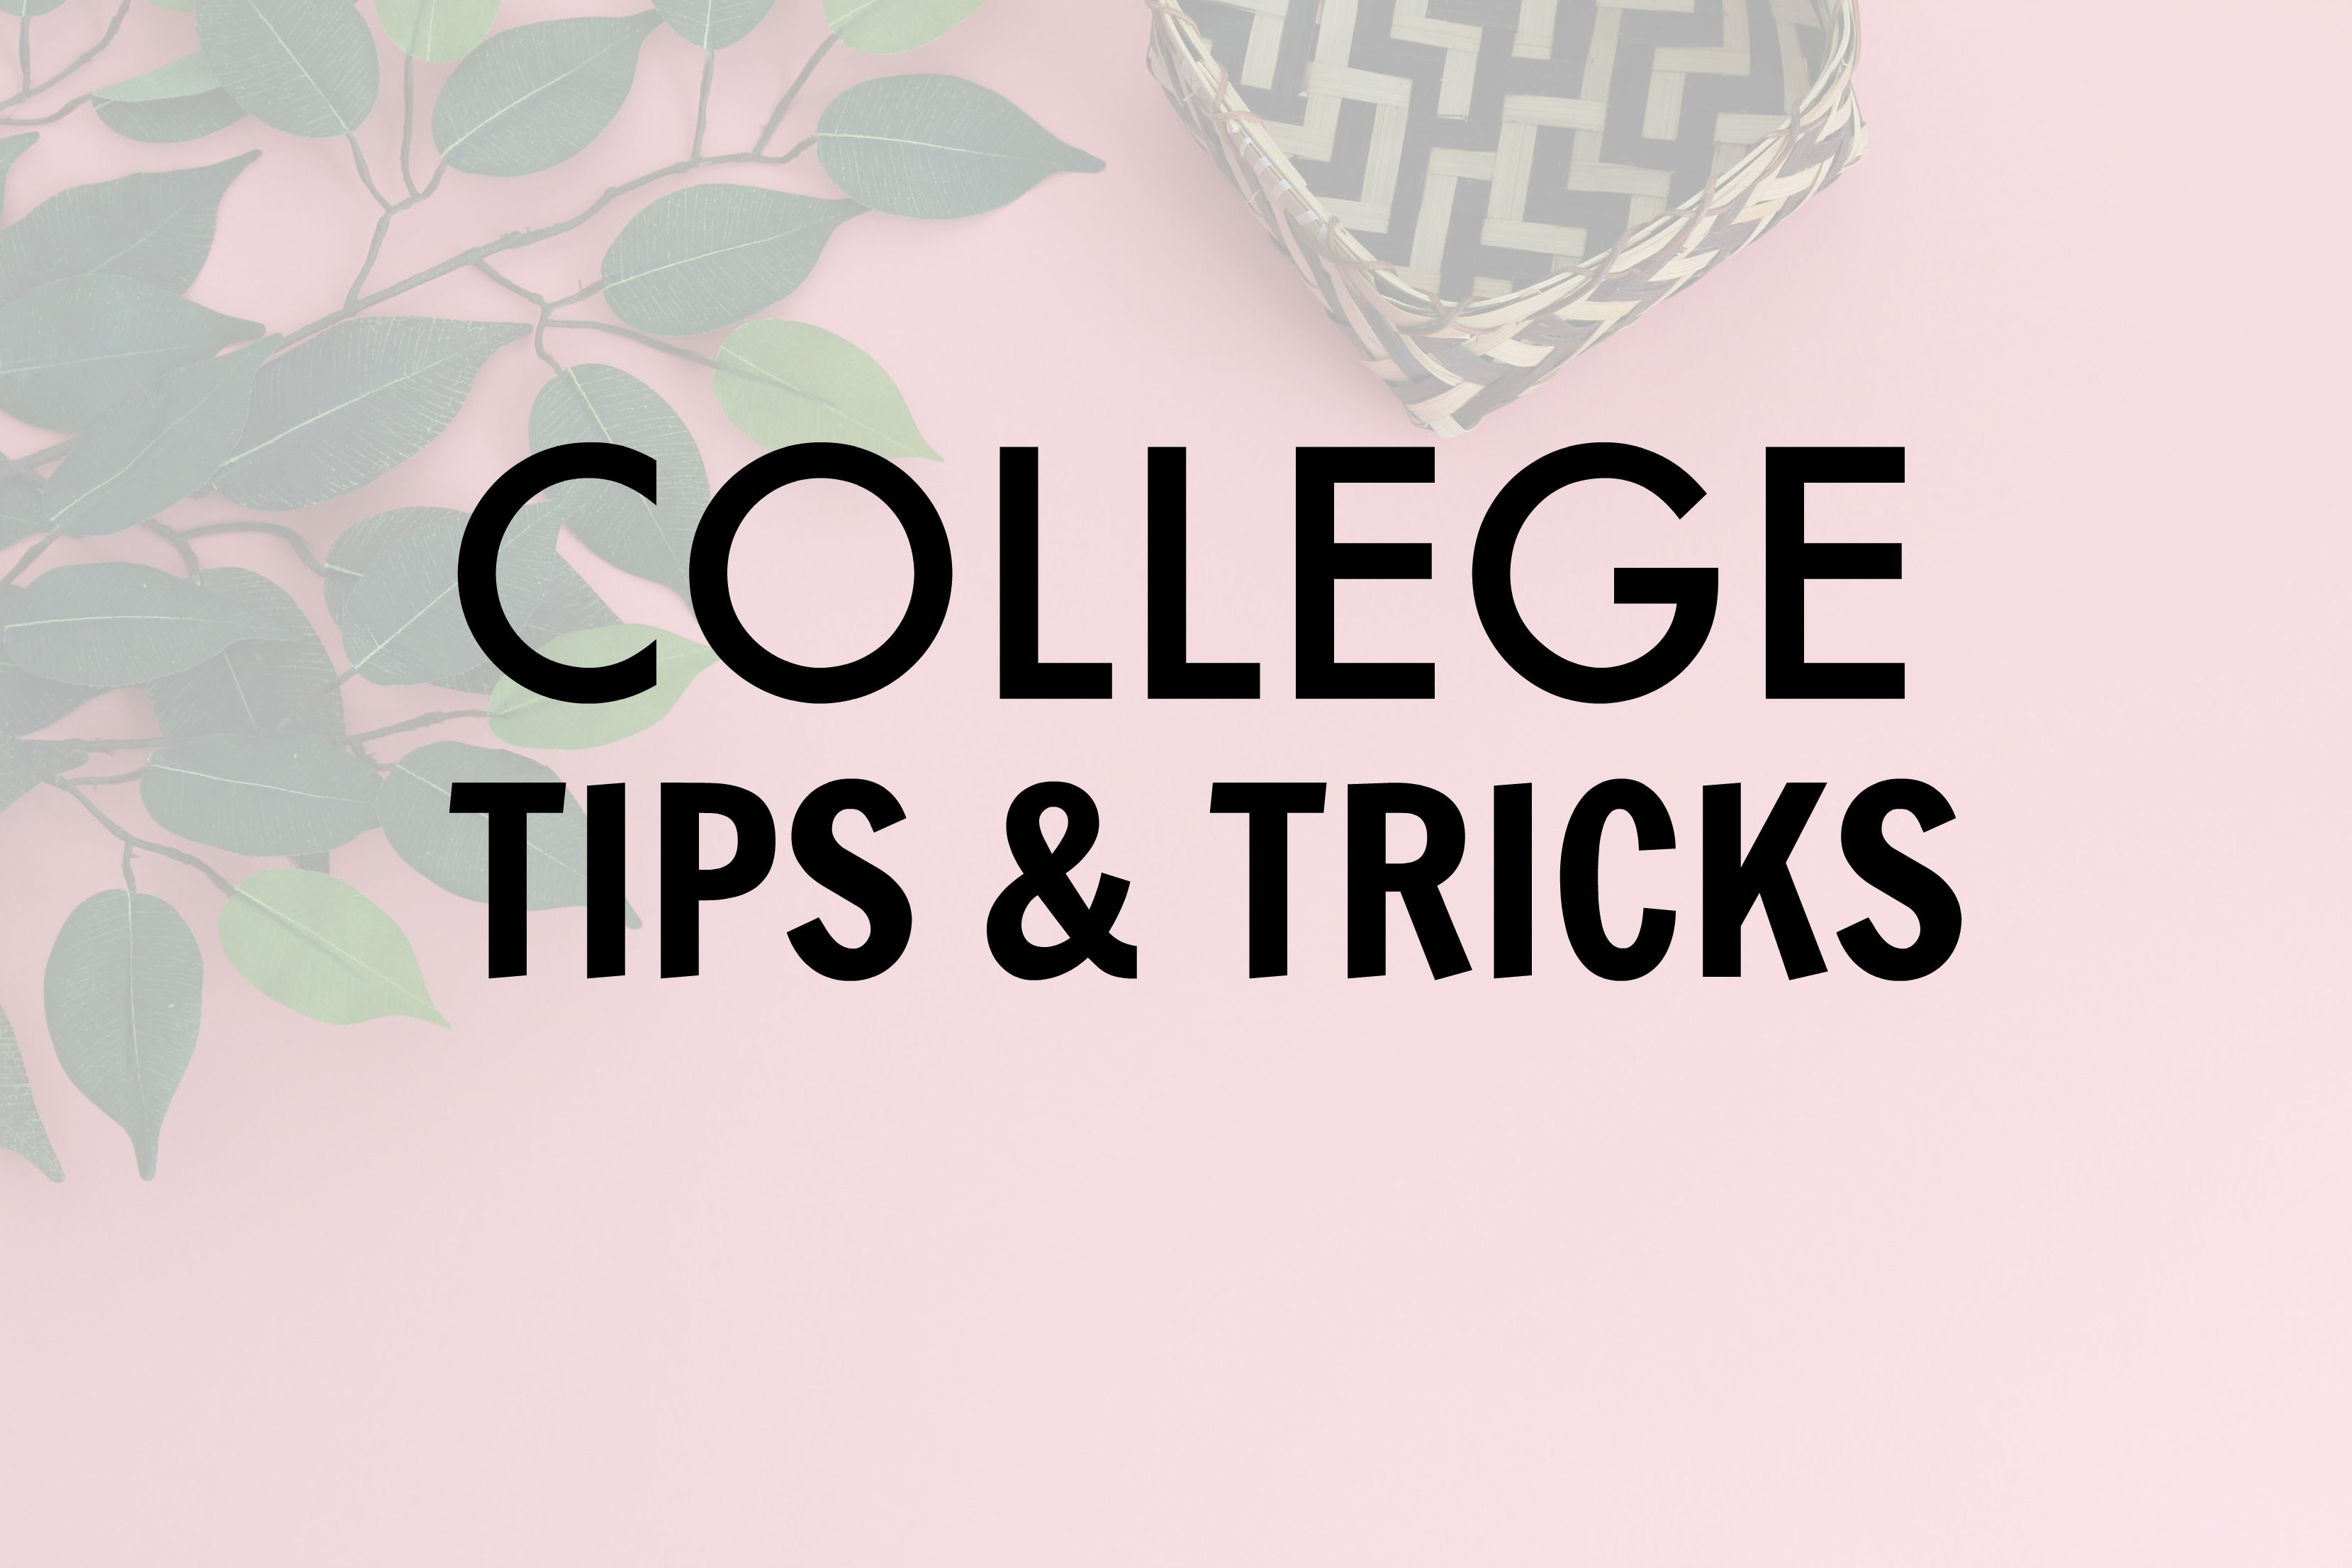 College tips and tricks to help you succeed in college and